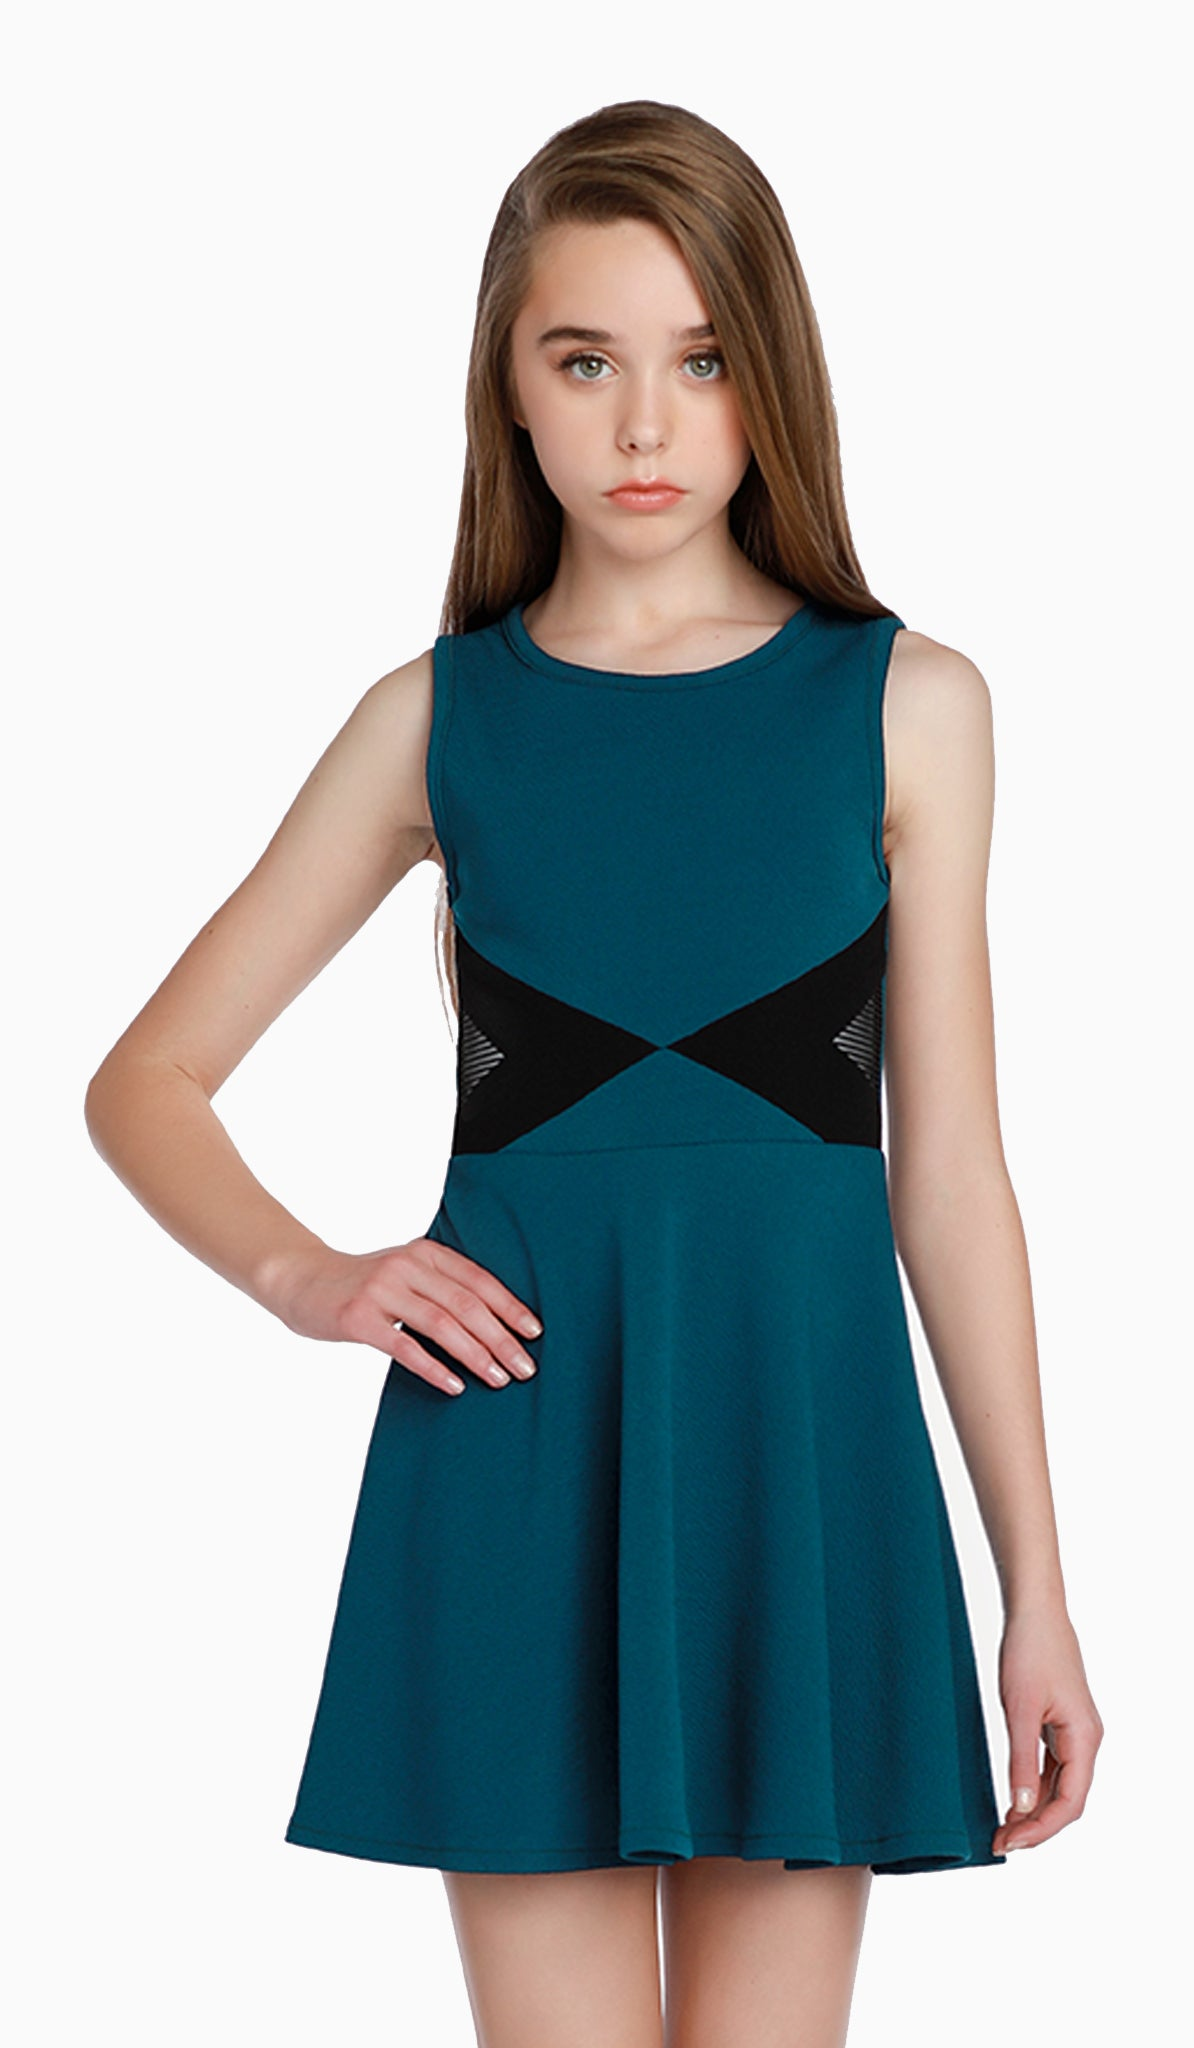 THE JADA DRESS - Sallymiller.com - [variant title] - | Event & Party Dresses for Tween Girls & Juniors | Weddings Dresses, Bat Mitzvah Dresses, Sweet Sixteen Dresses, Graduation Dresses, Birthday Party Dresses, Bar Mitzvah Dresses, Cotillion Dresses